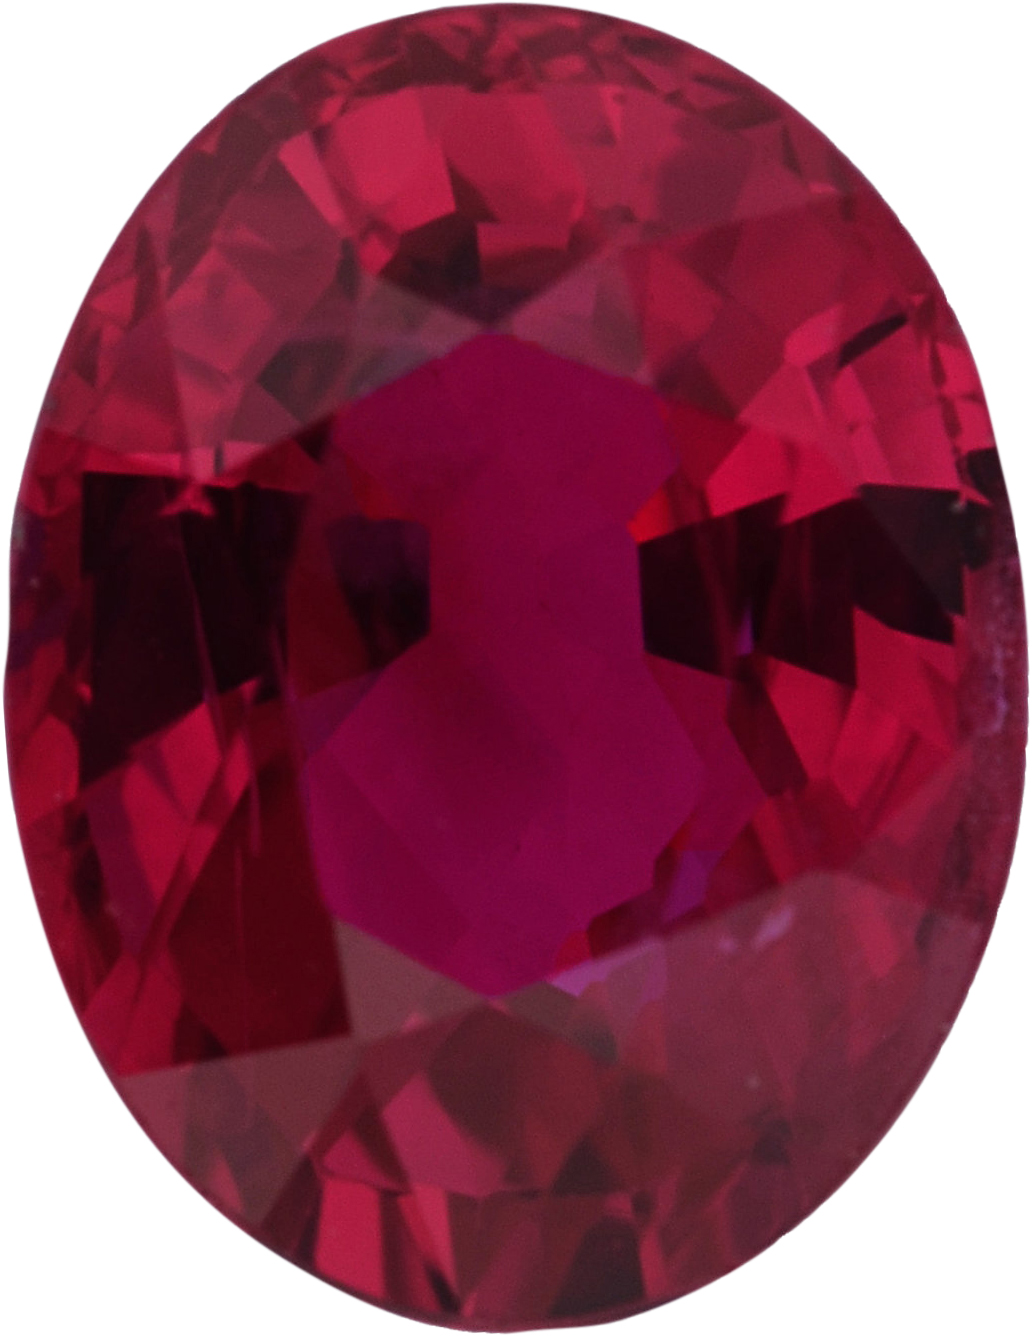 Unique Loose Ruby Gem in Oval Cut, Deep  Red Color, 6.67 x 5.15 mm, 1.12 carats